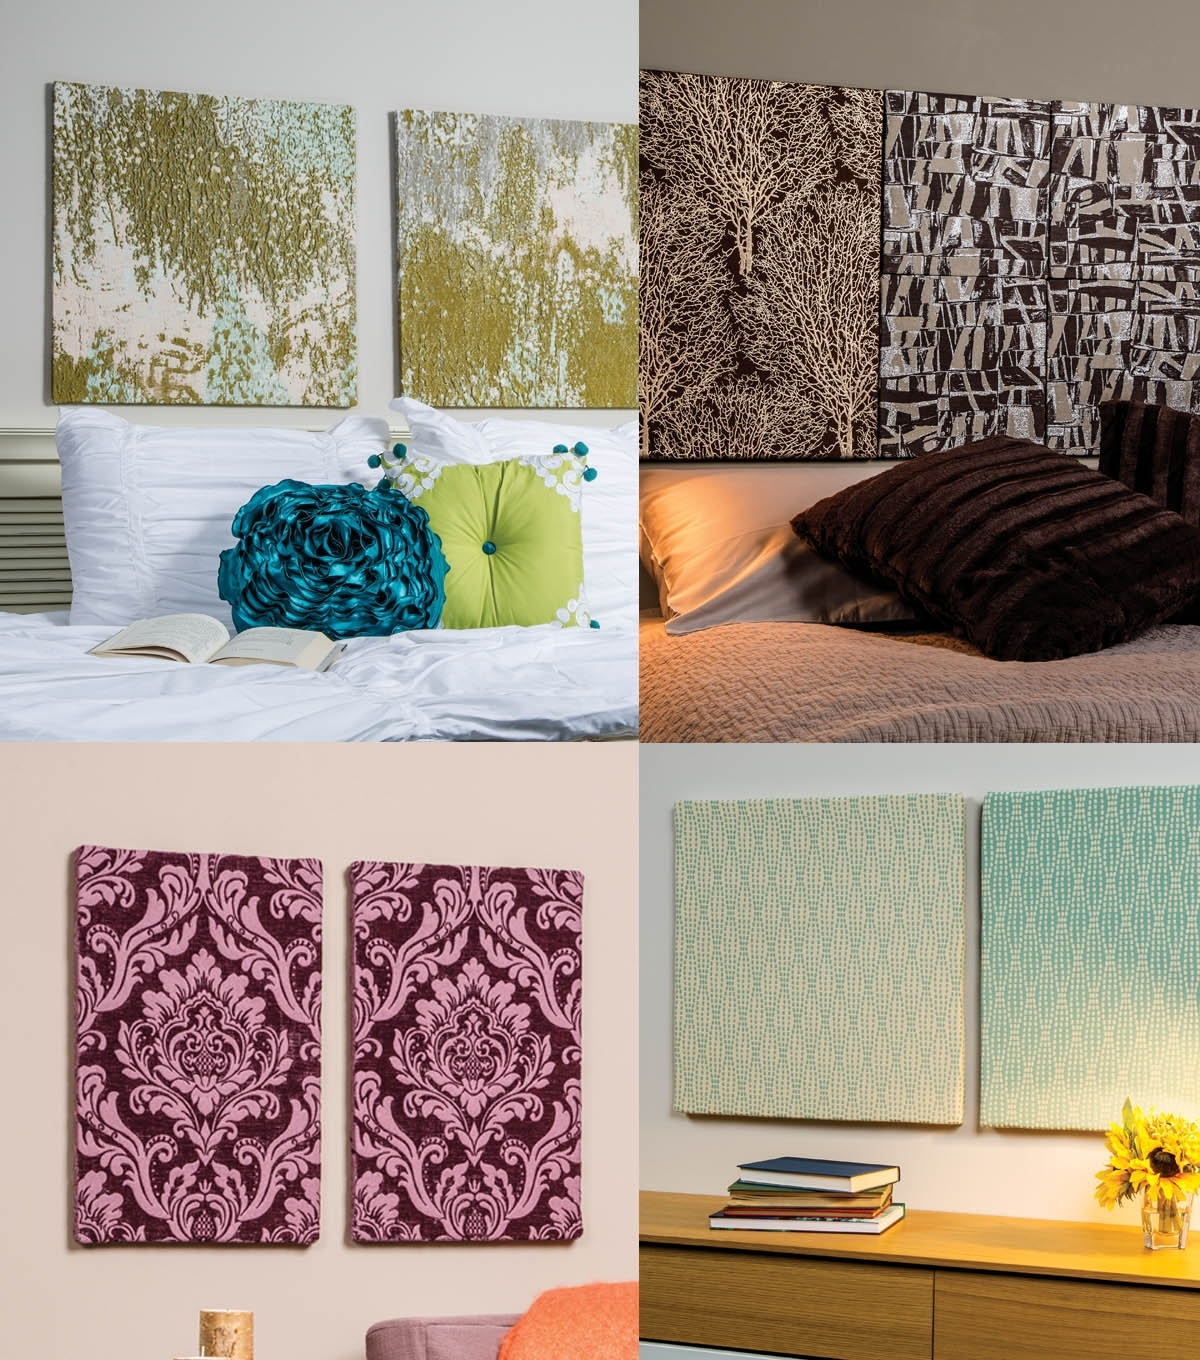 Foamology 101: Tips And Tricks For Wrapping Tiles And Panels | Joann with regard to Most Popular Joann Fabric Wall Art